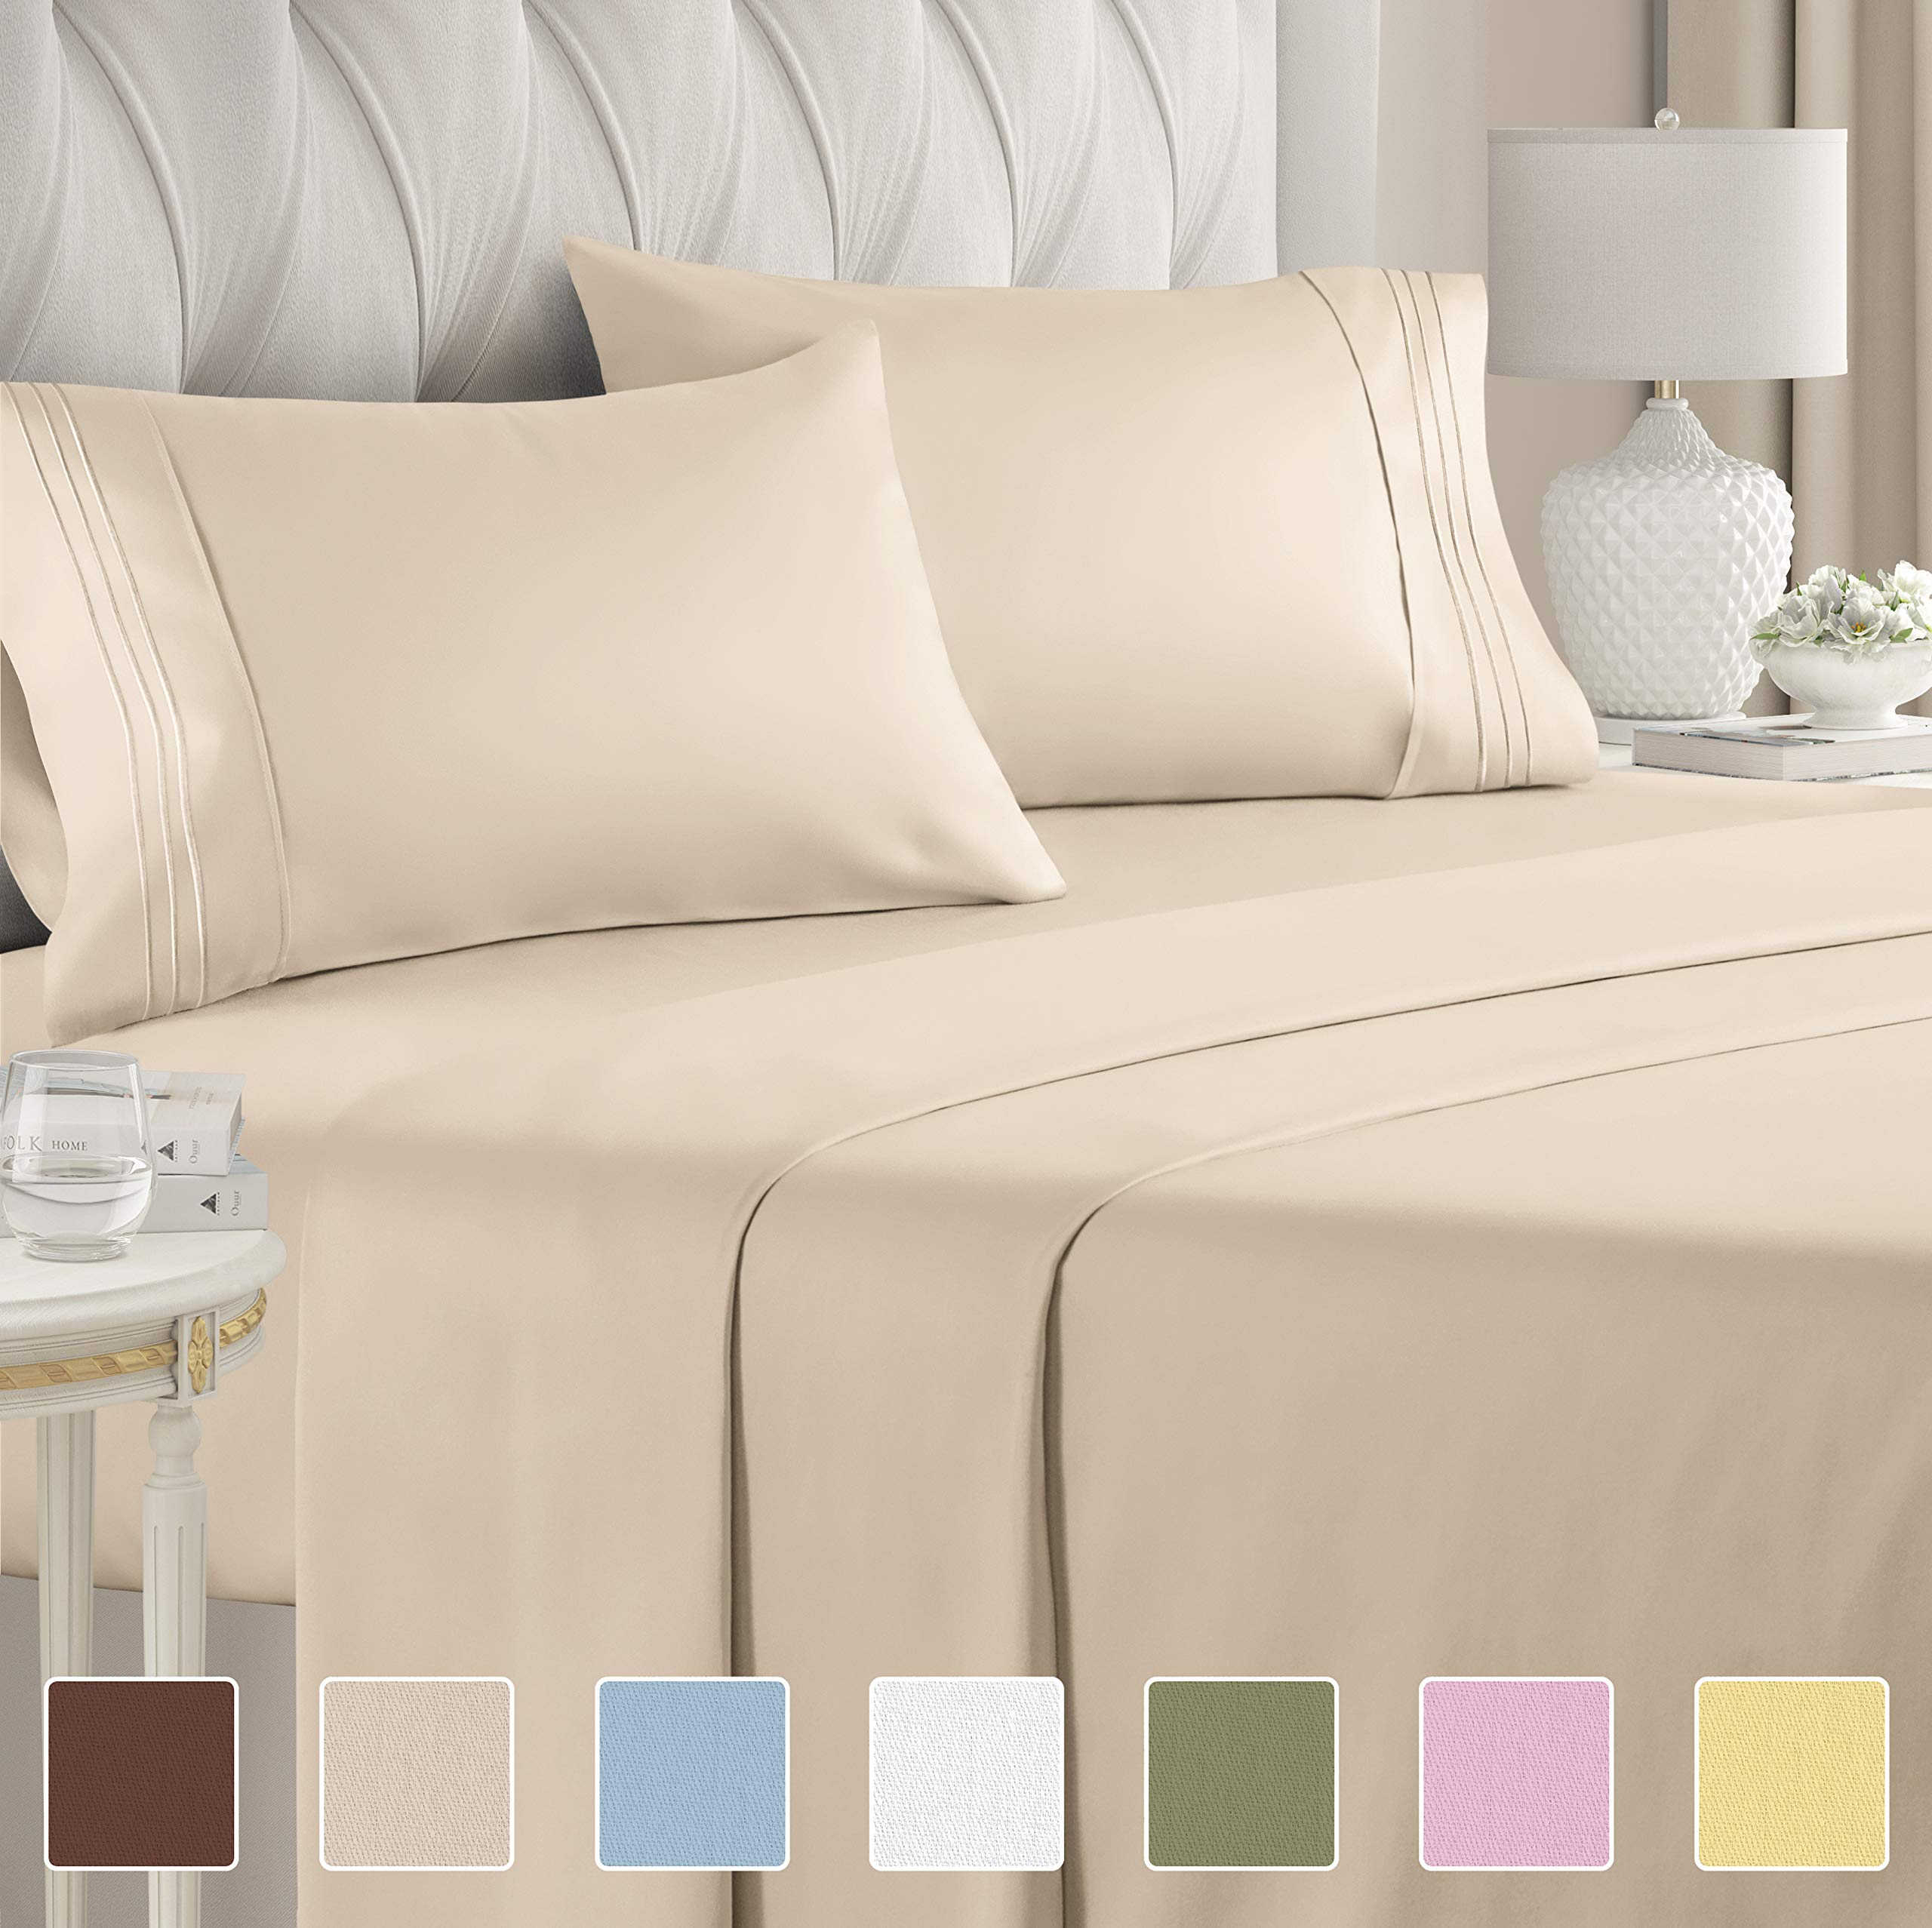 Twin Sheet Set - 3 Piece - College Dorm Room Bed Sheets - Hotel Luxury Bed Sheets - Extra Soft Sheets - Deep Pockets - Easy Fit - Breathable & Cooling Sheets  Bed Sheets - Twin - Twin Mattress Sheets